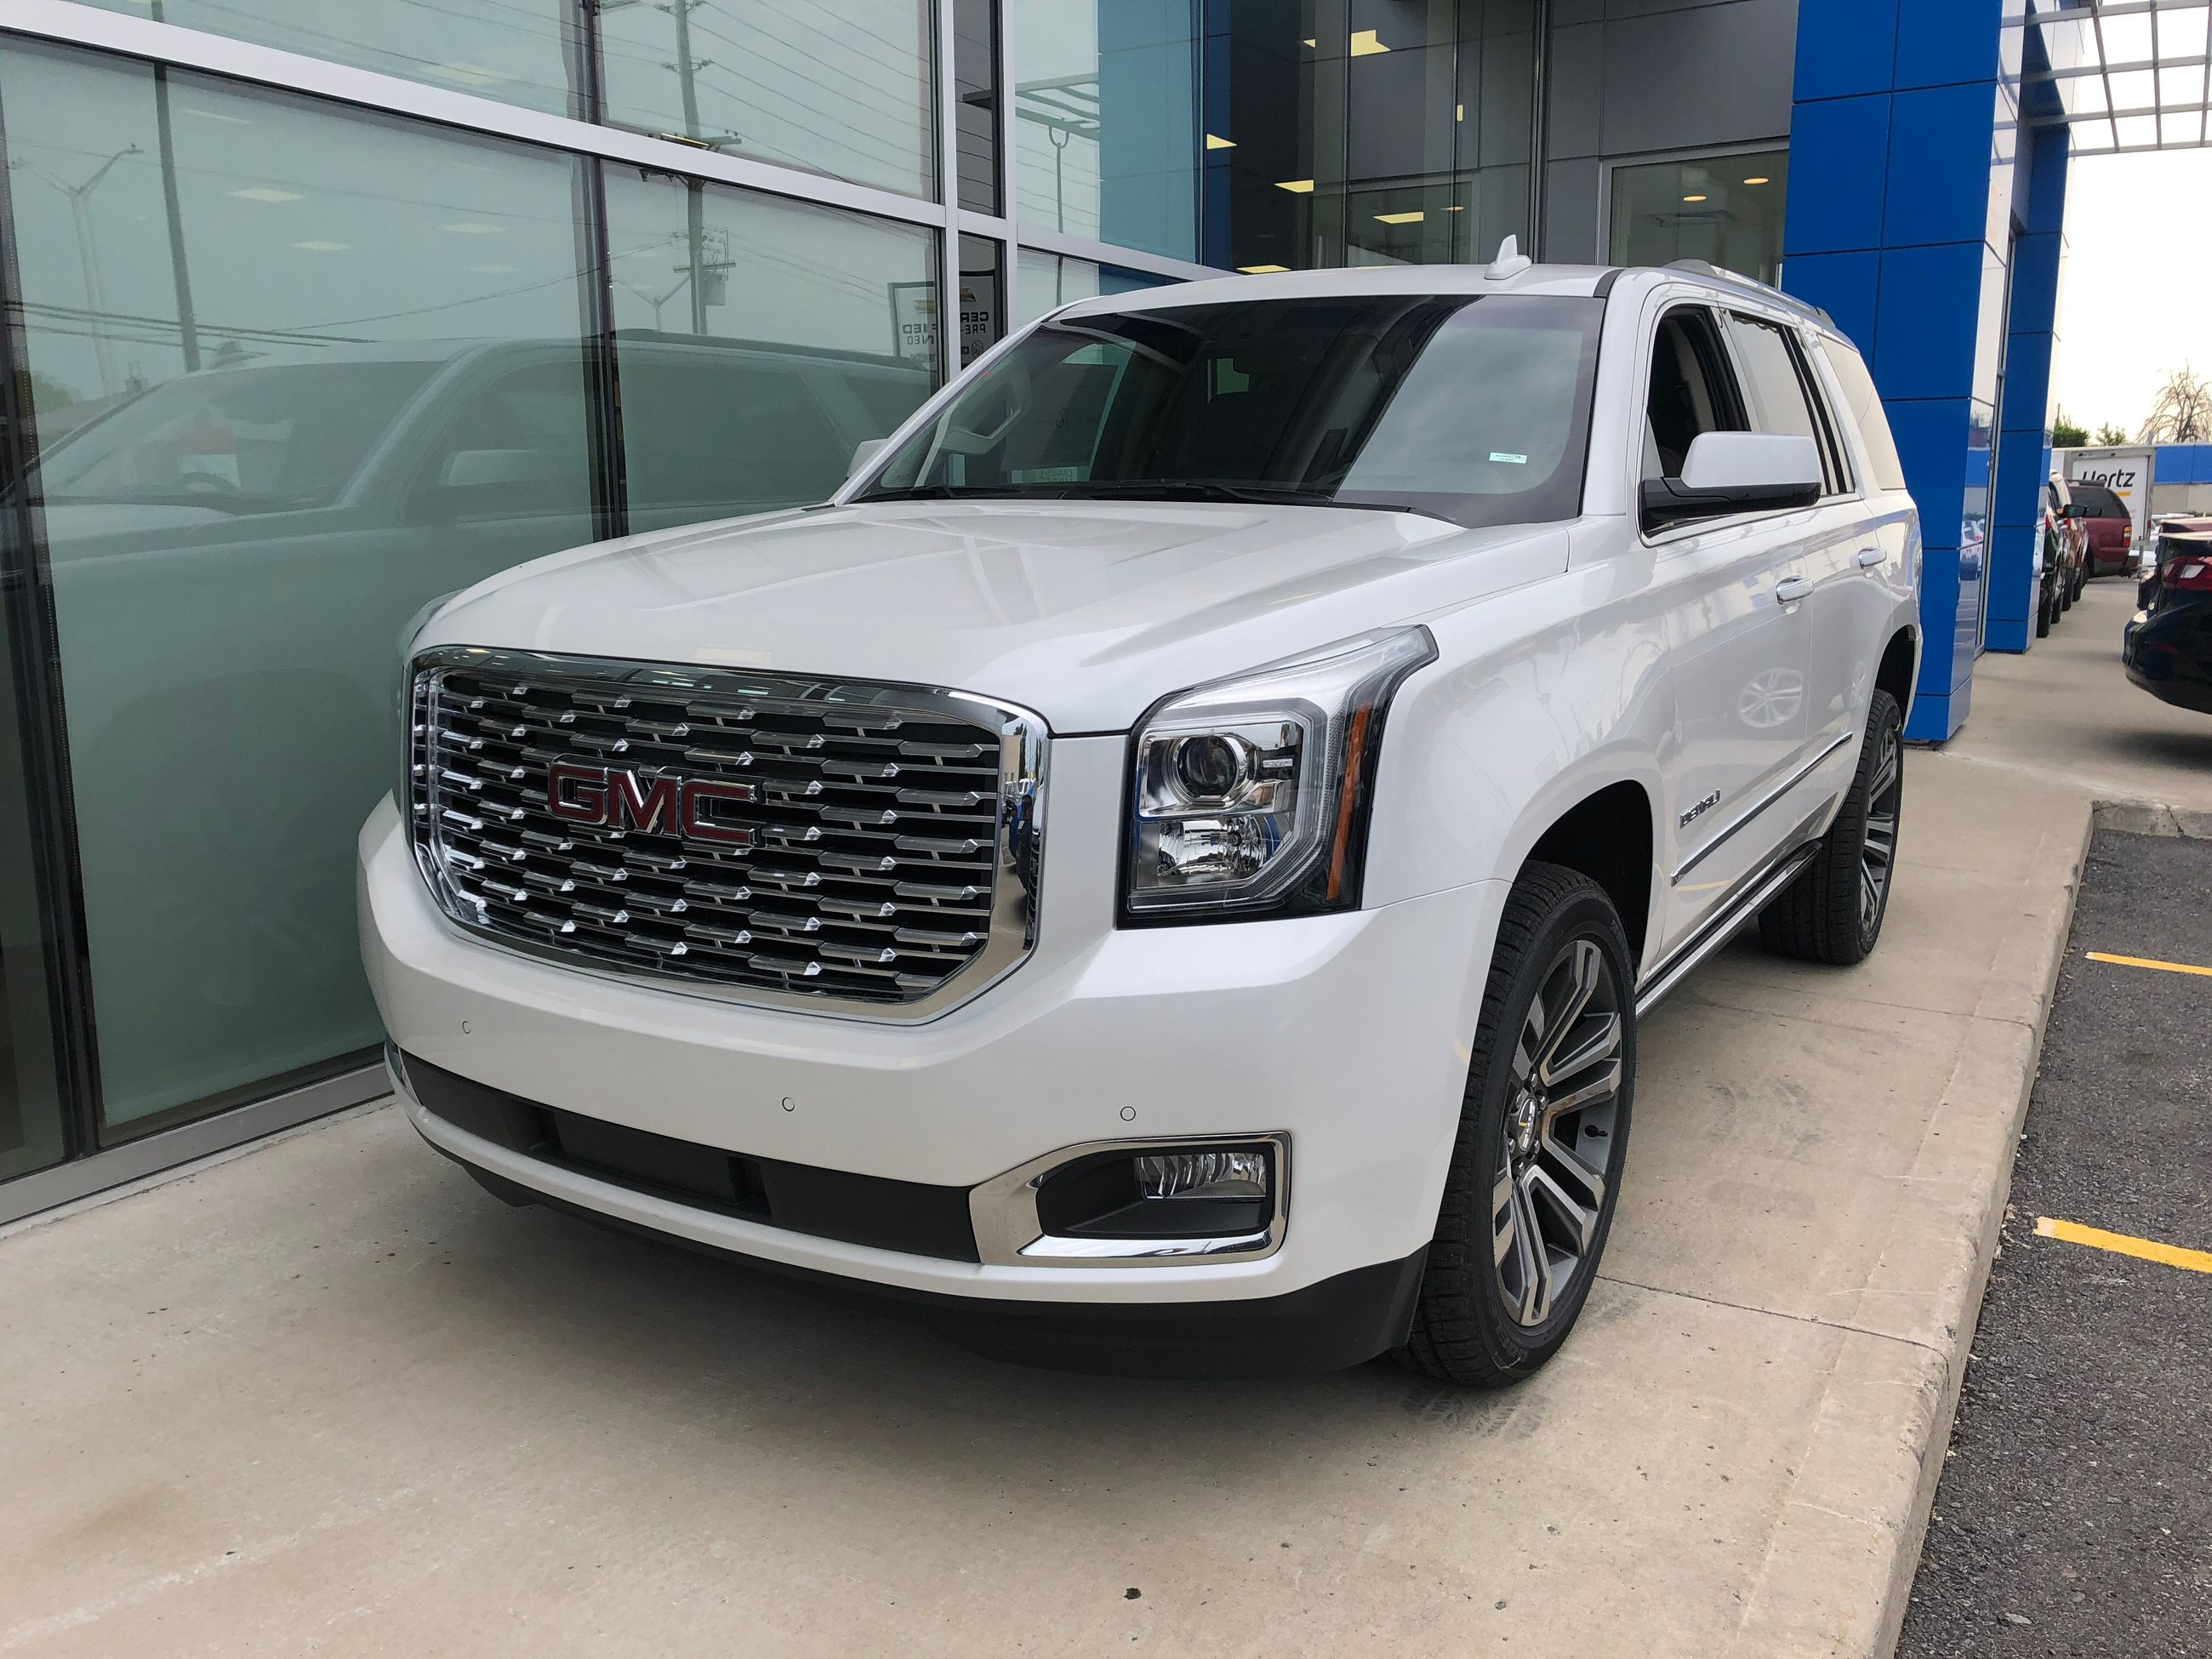 New 2019 GMC Yukon Denali for Sale - $92399.0 | Surgenor ...